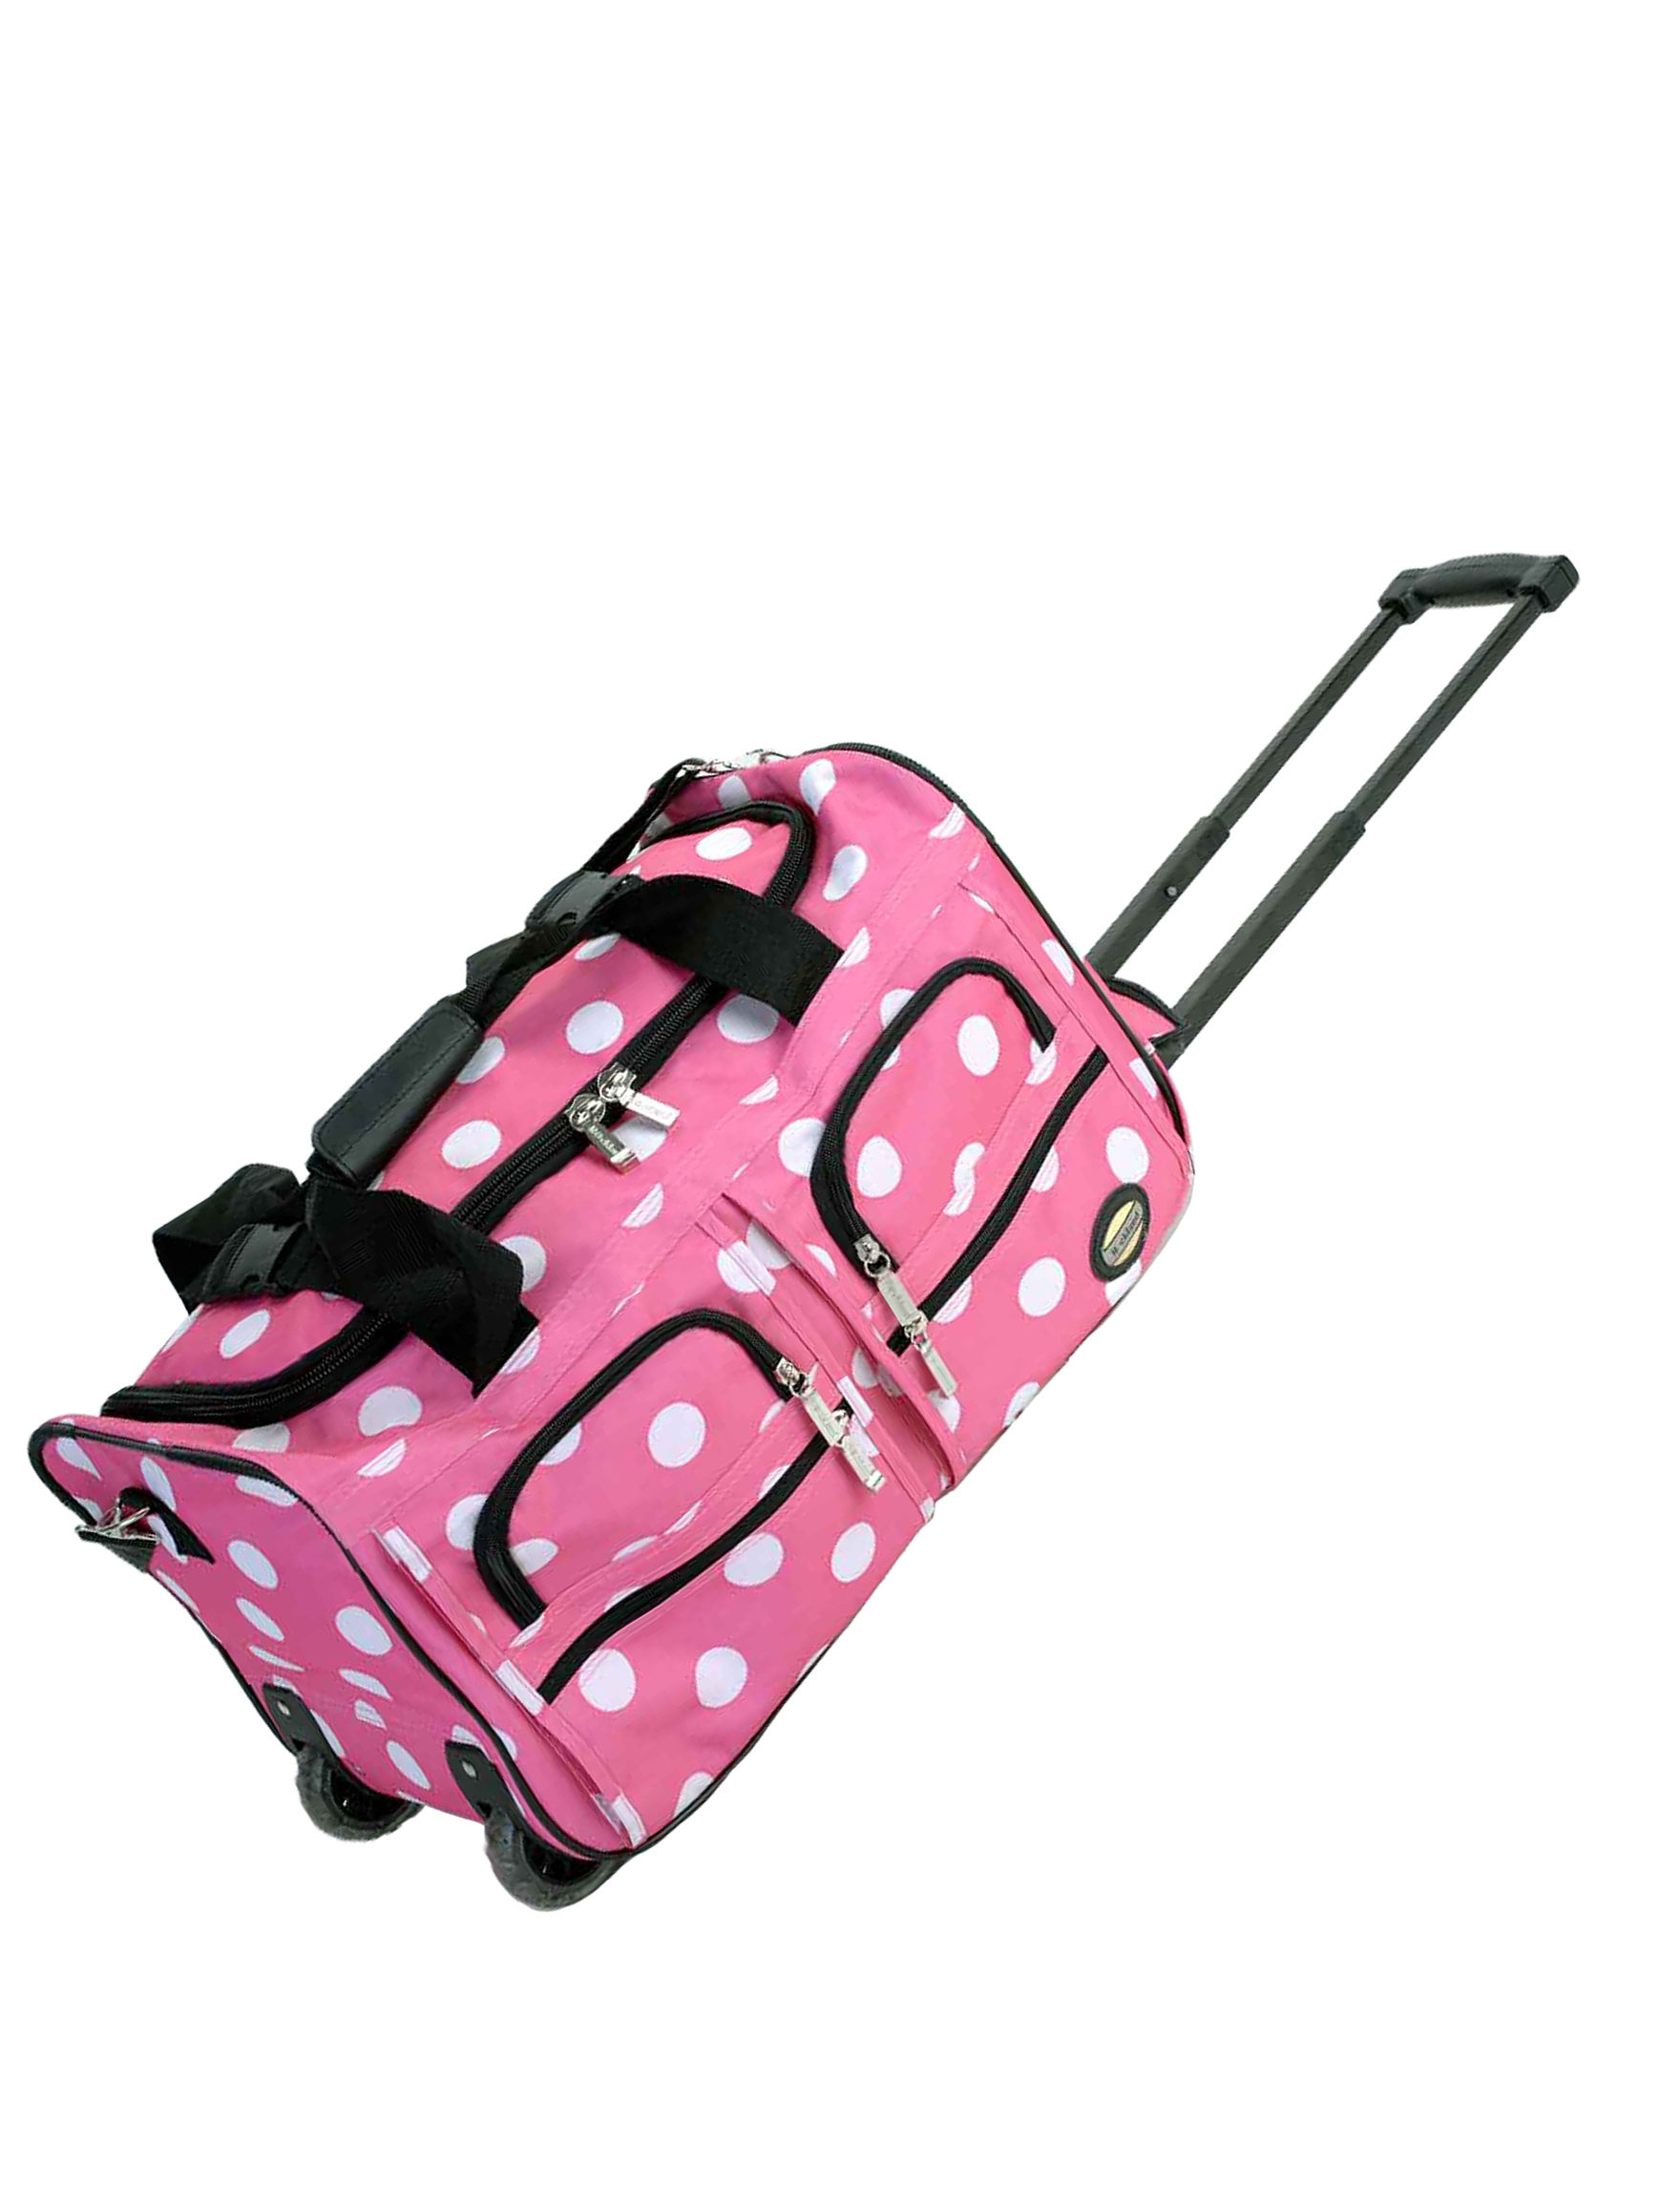 Rockland Pink / White Duffle Bags Upright Spinners